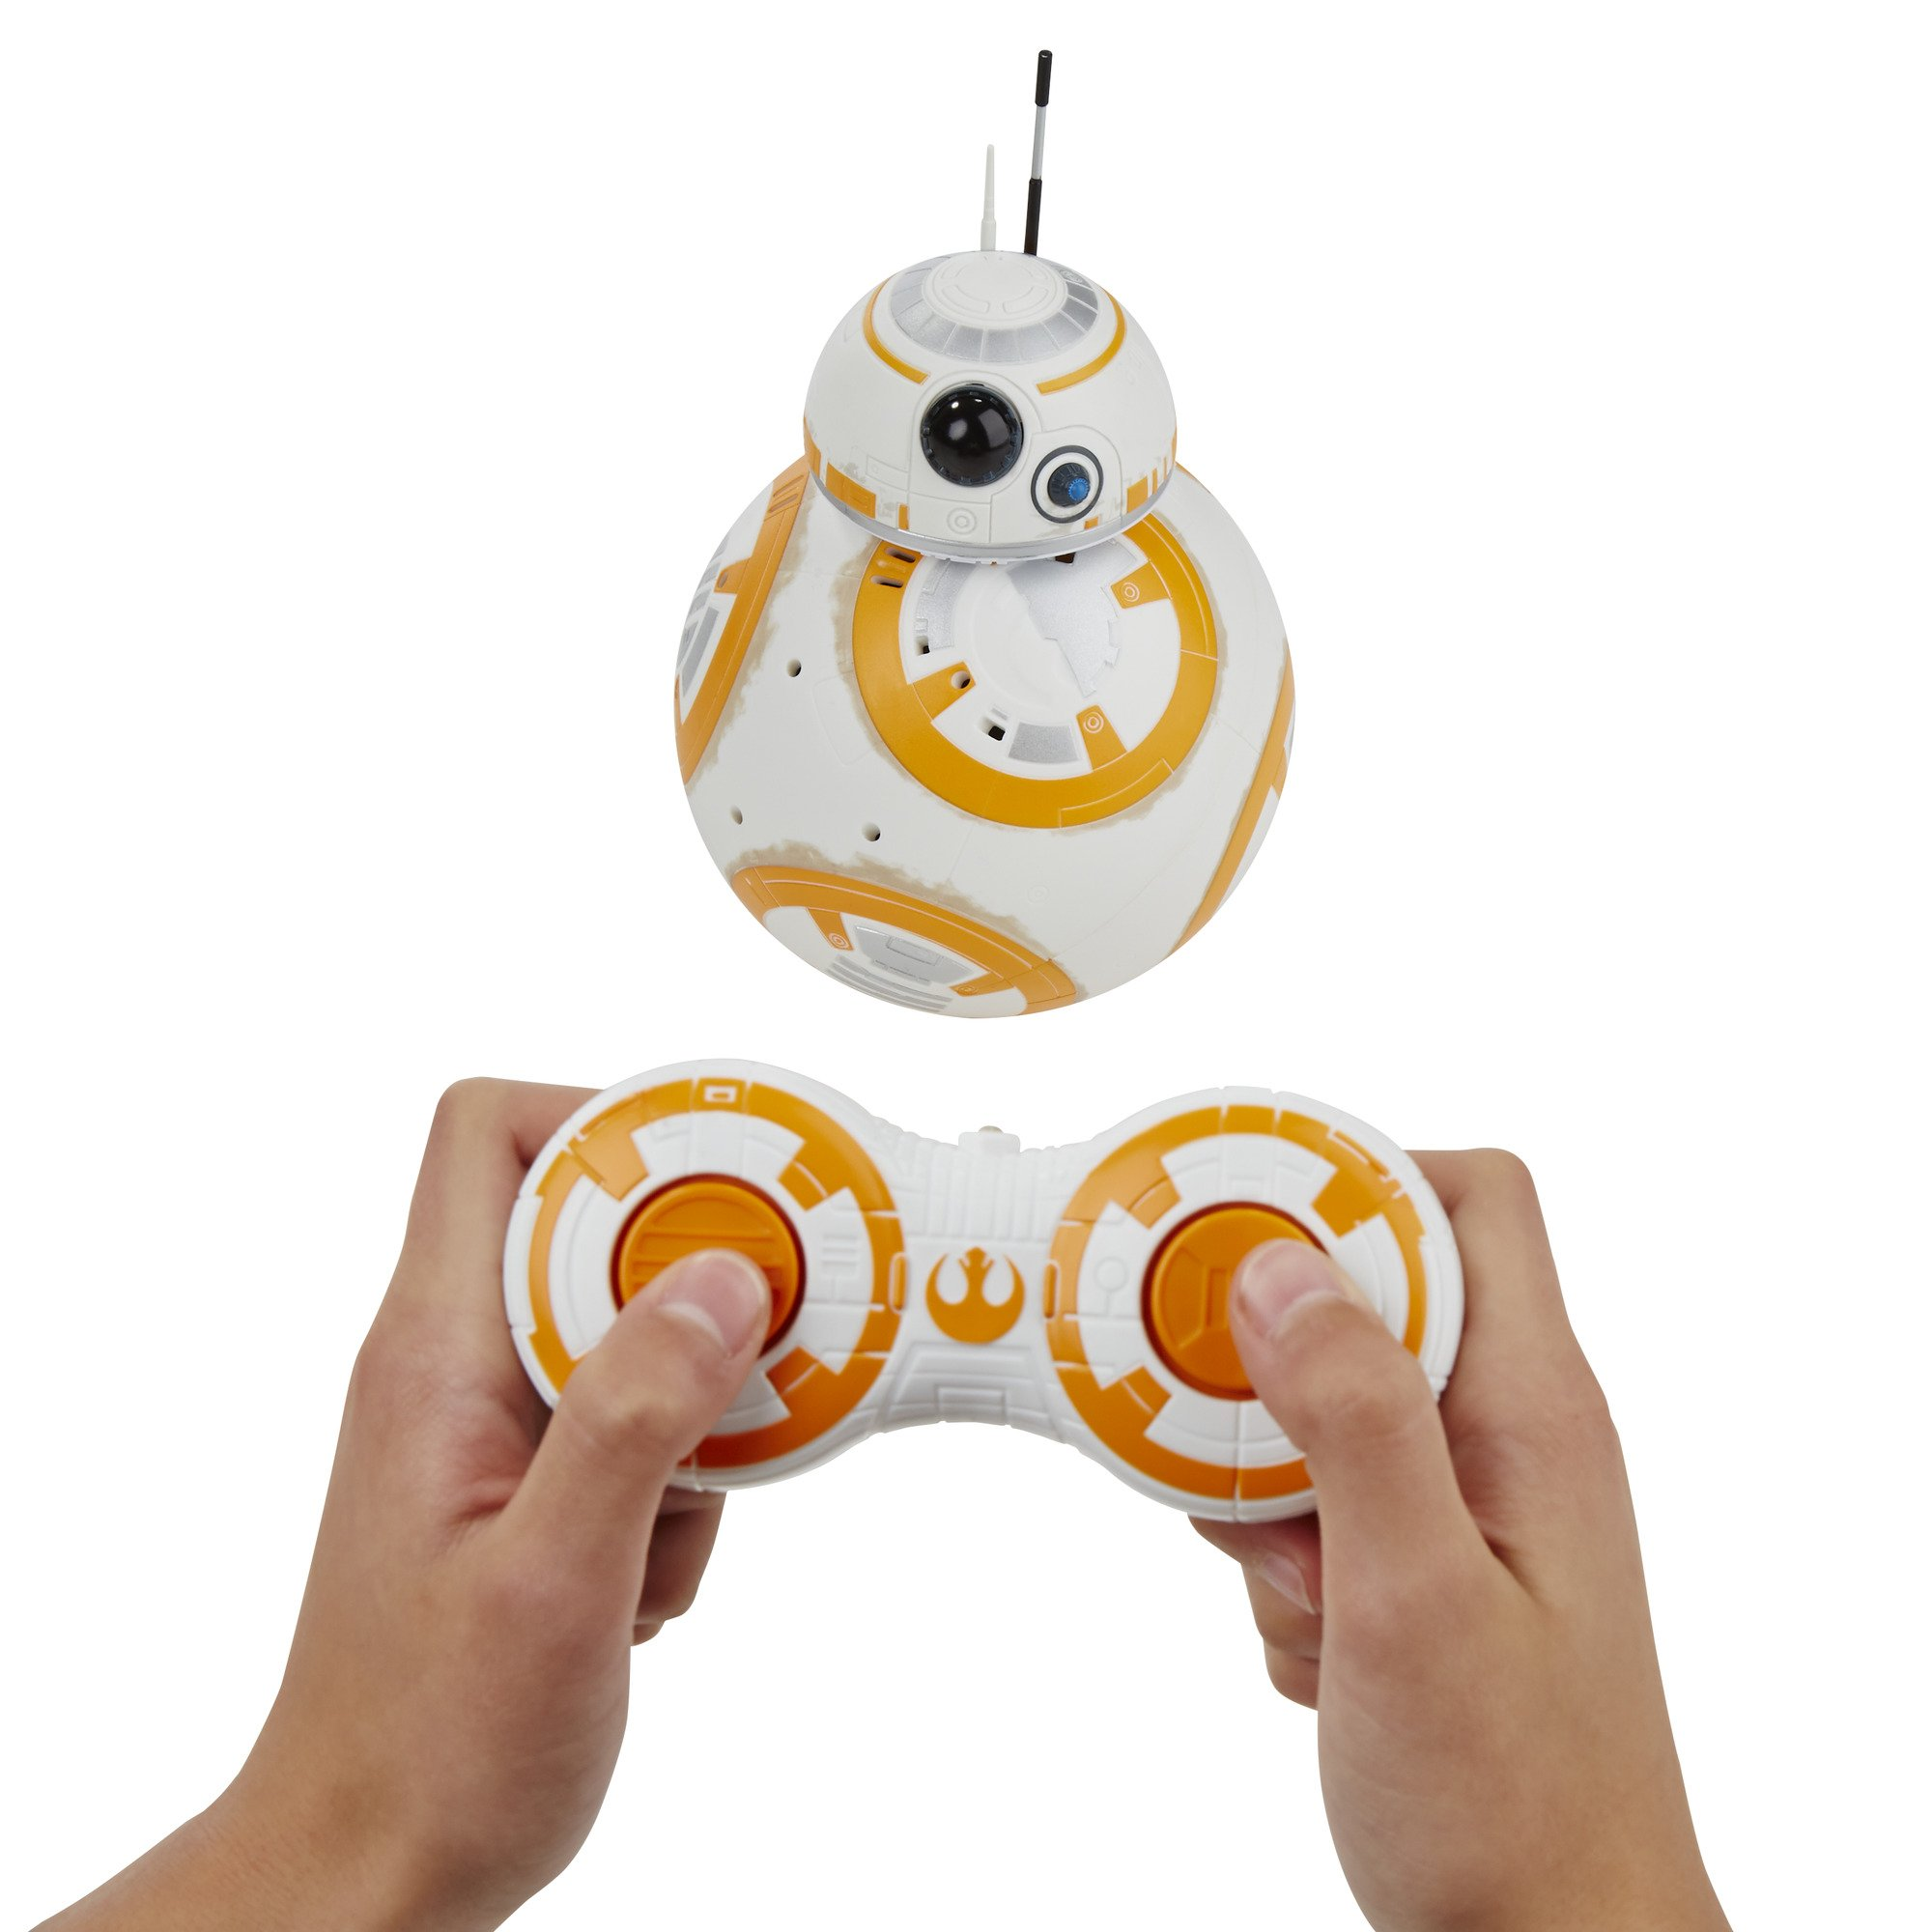 Star Wars The Force Awakens RC BB-8 by Star Wars (Image #12)